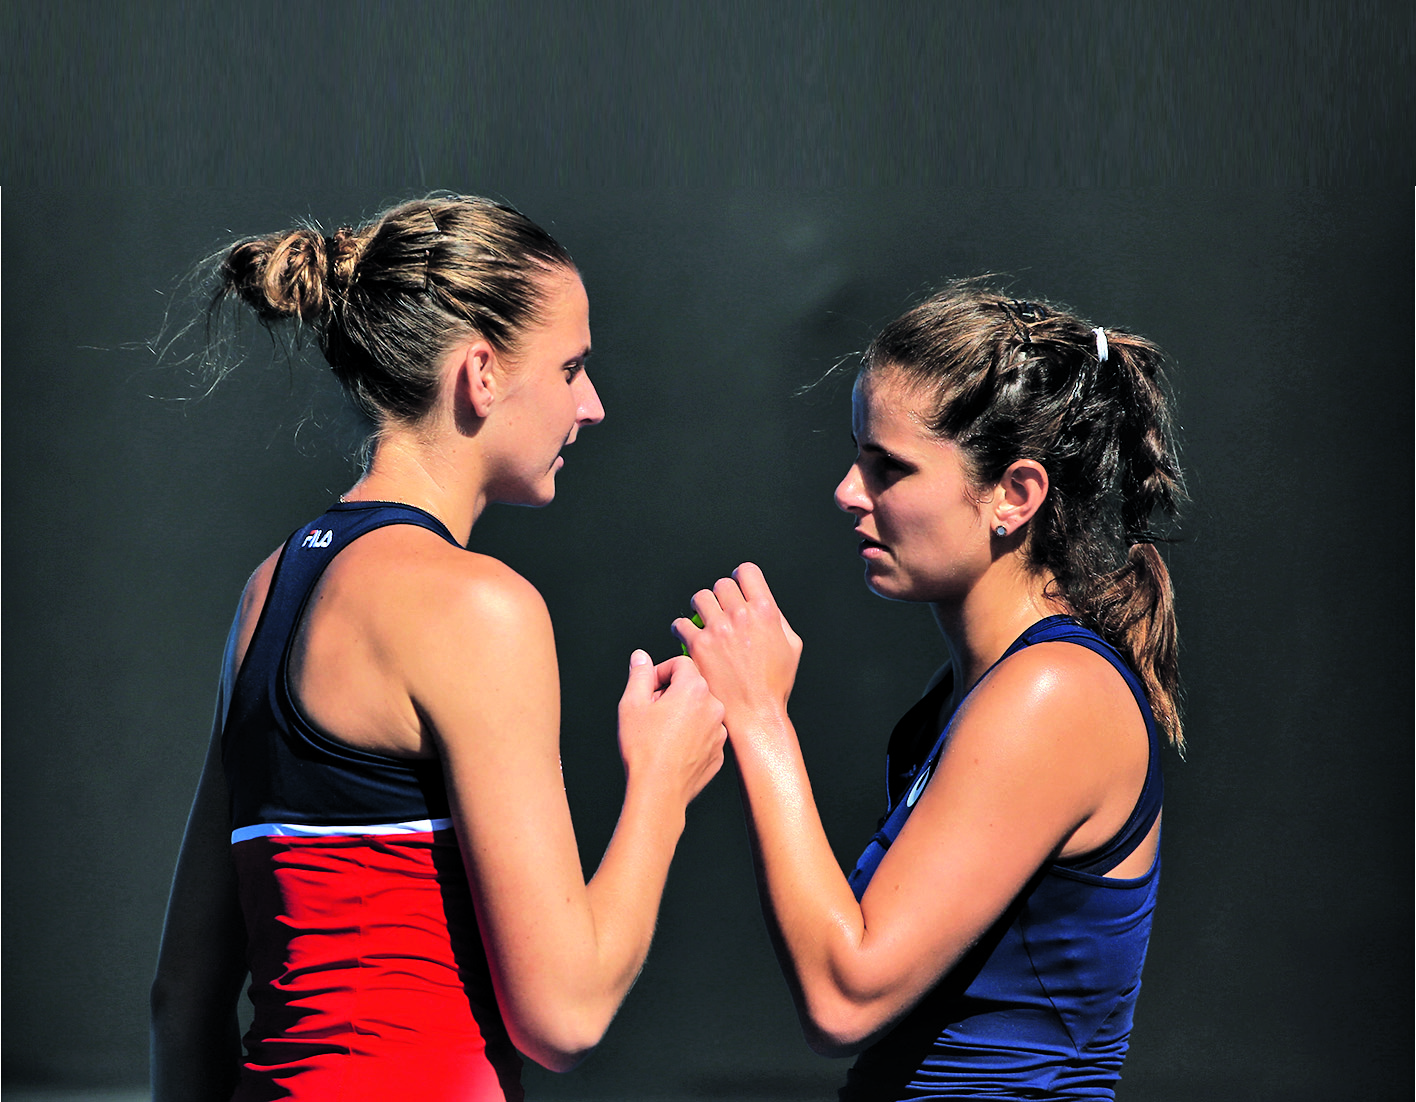 MELBOURNE, AUSTRALIA - JANUARY 19: Karolina Pliskova of the Czech Republic high fives Julia Goerges of Germany in their first match against Andreja Klepac of of Slovenia and Maria Jose Martinez Sanchez on day four of the 2017 Australian Open at Melbourne Park on January 19, 2017 in Melbourne, Australia. (Photo by Michael Dodge/Getty Images)